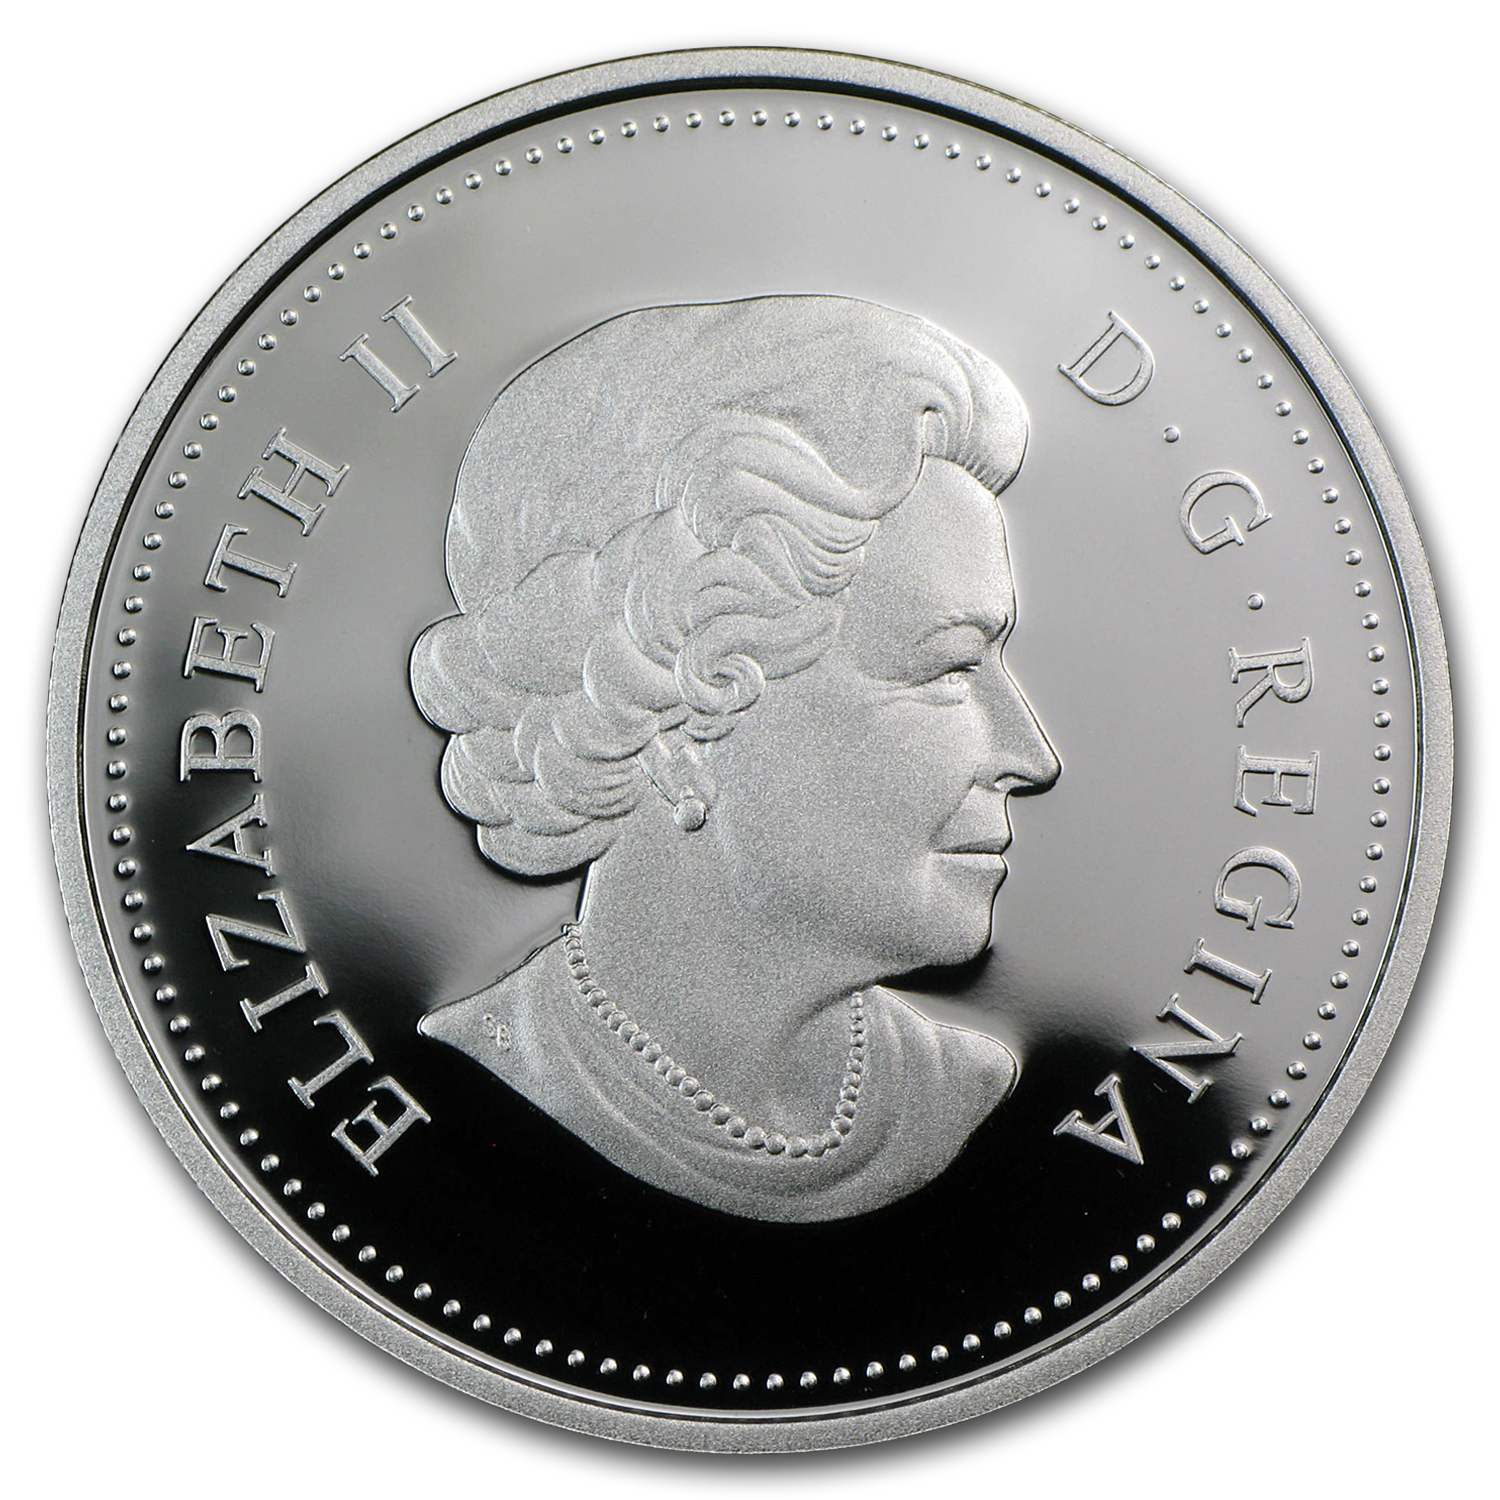 2011 Canada Silver $1 100th Anniversary of Parks Proof